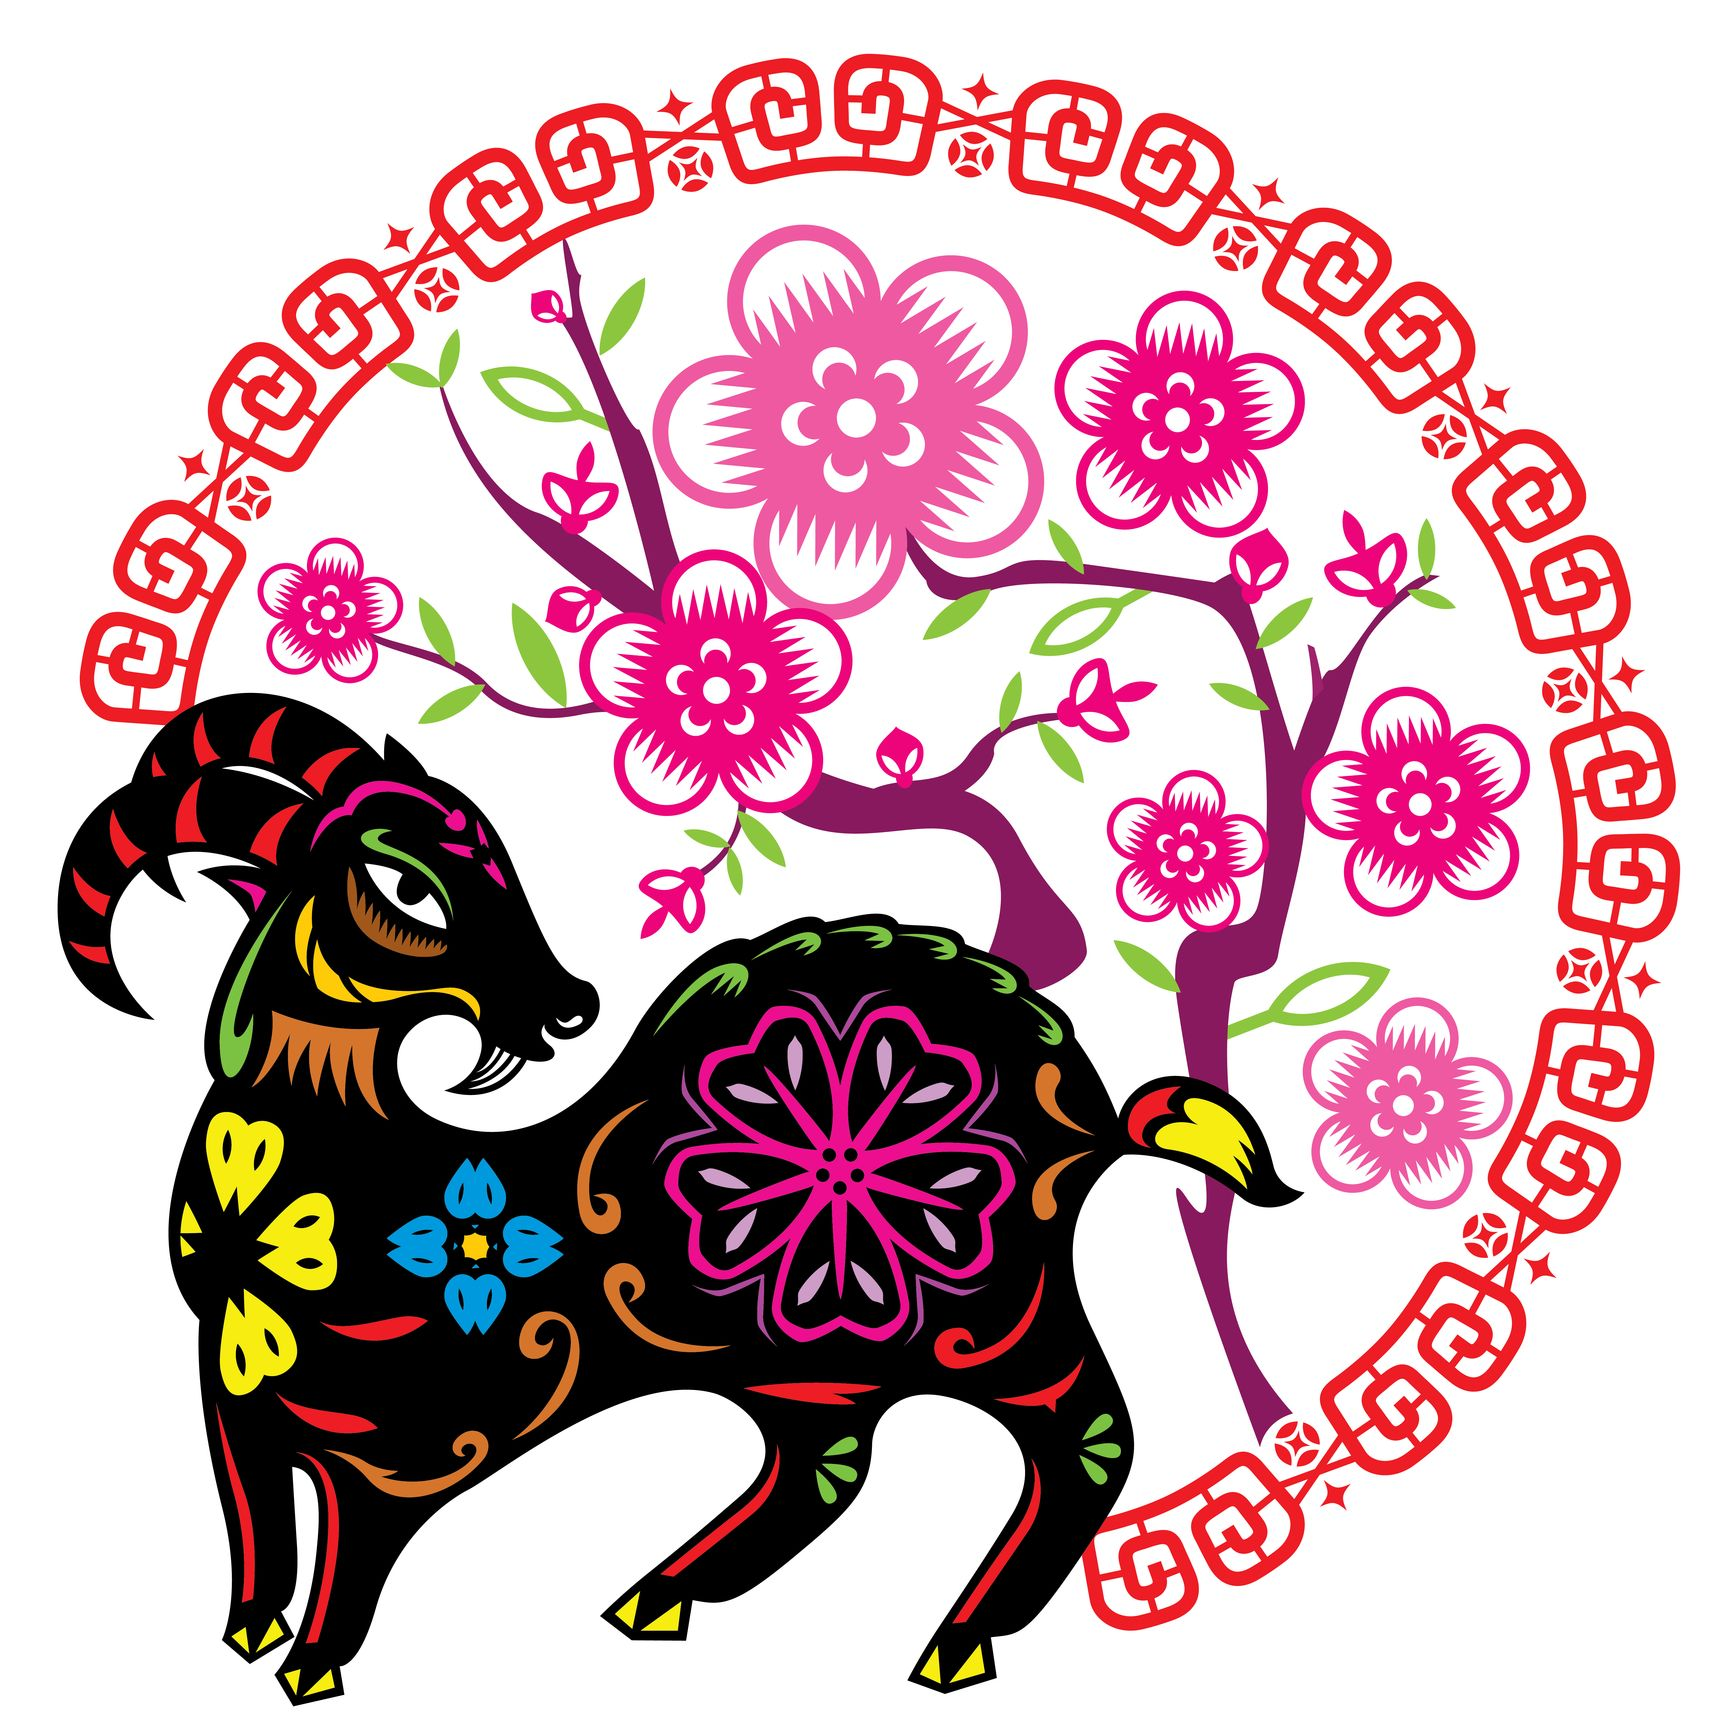 happy chinese lunar new year of goat 2015 - Chinese Lunar New Year 2015